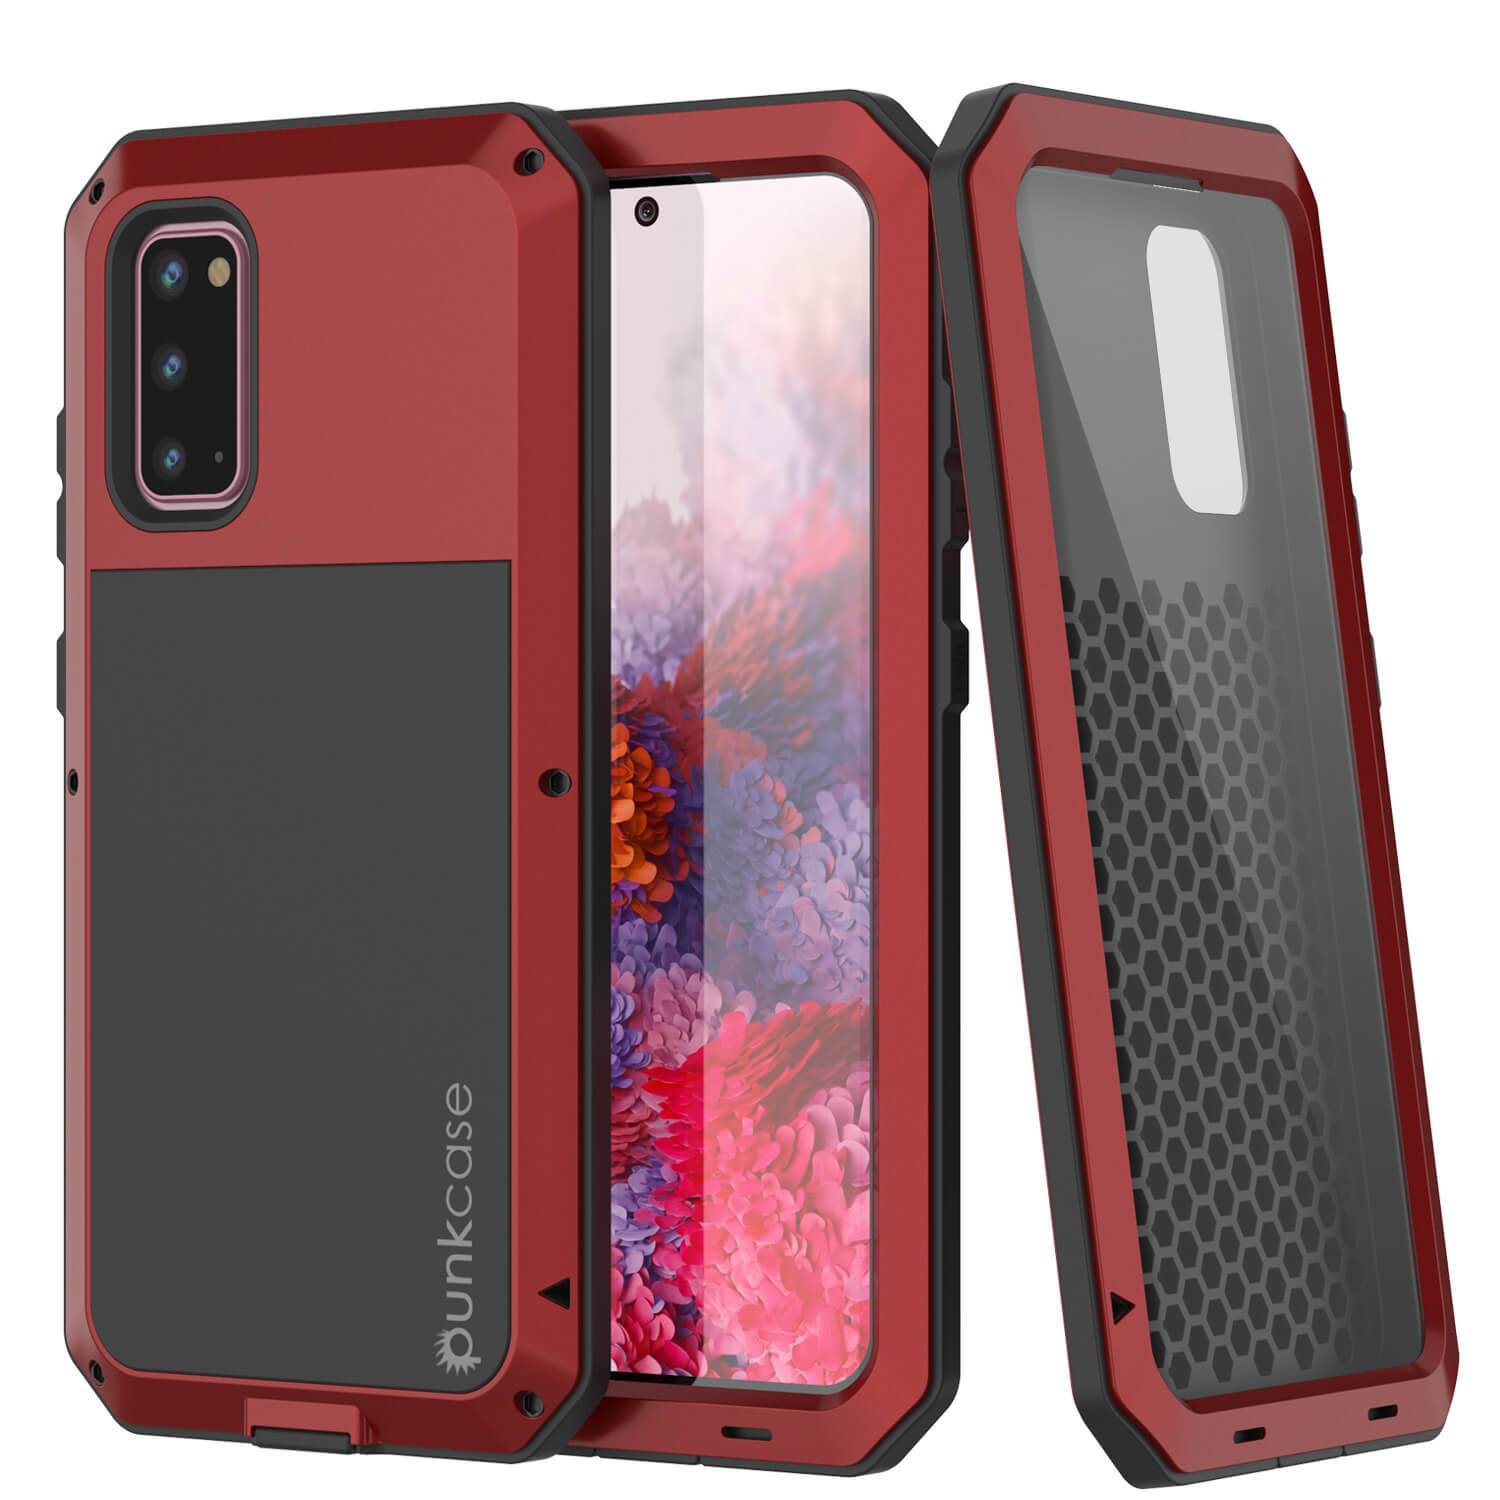 Galaxy s20 Metal Case, Heavy Duty Military Grade Rugged Armor Cover [Red]